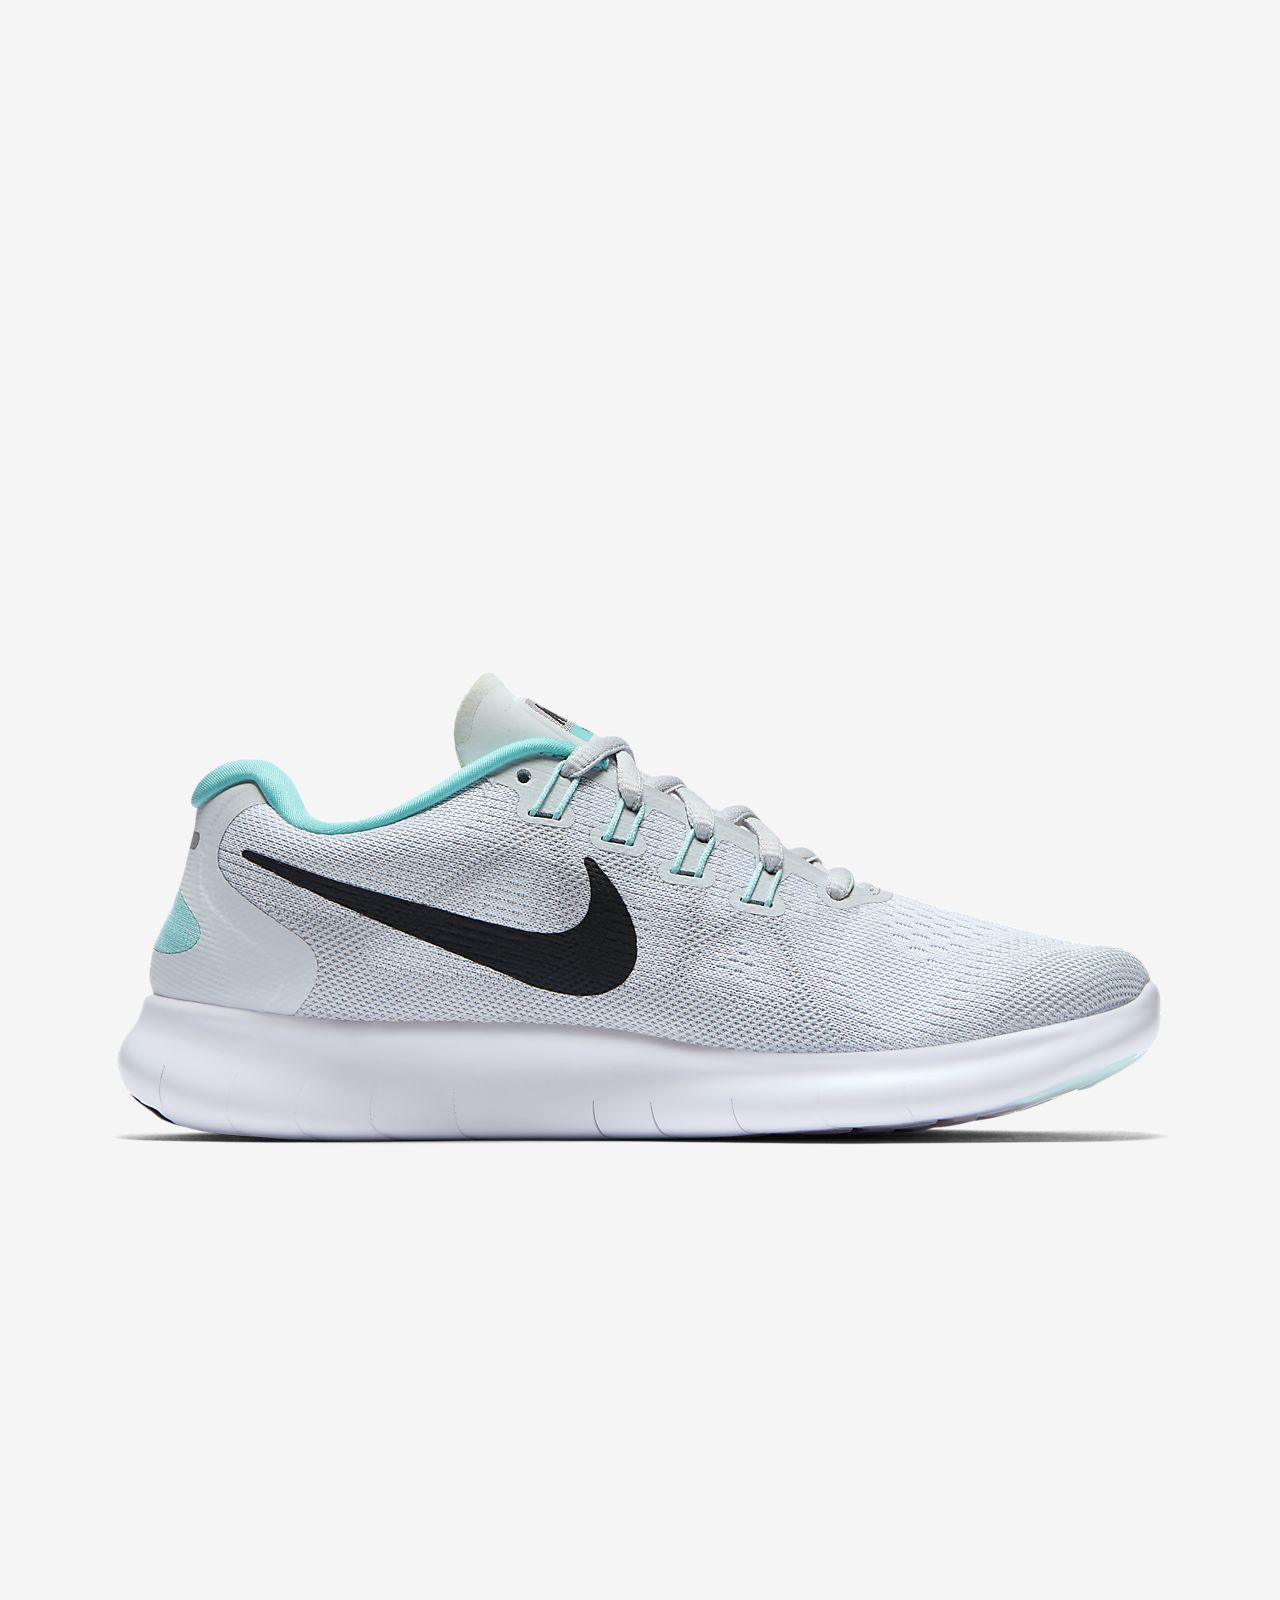 nike free run flyknit damen sale nz